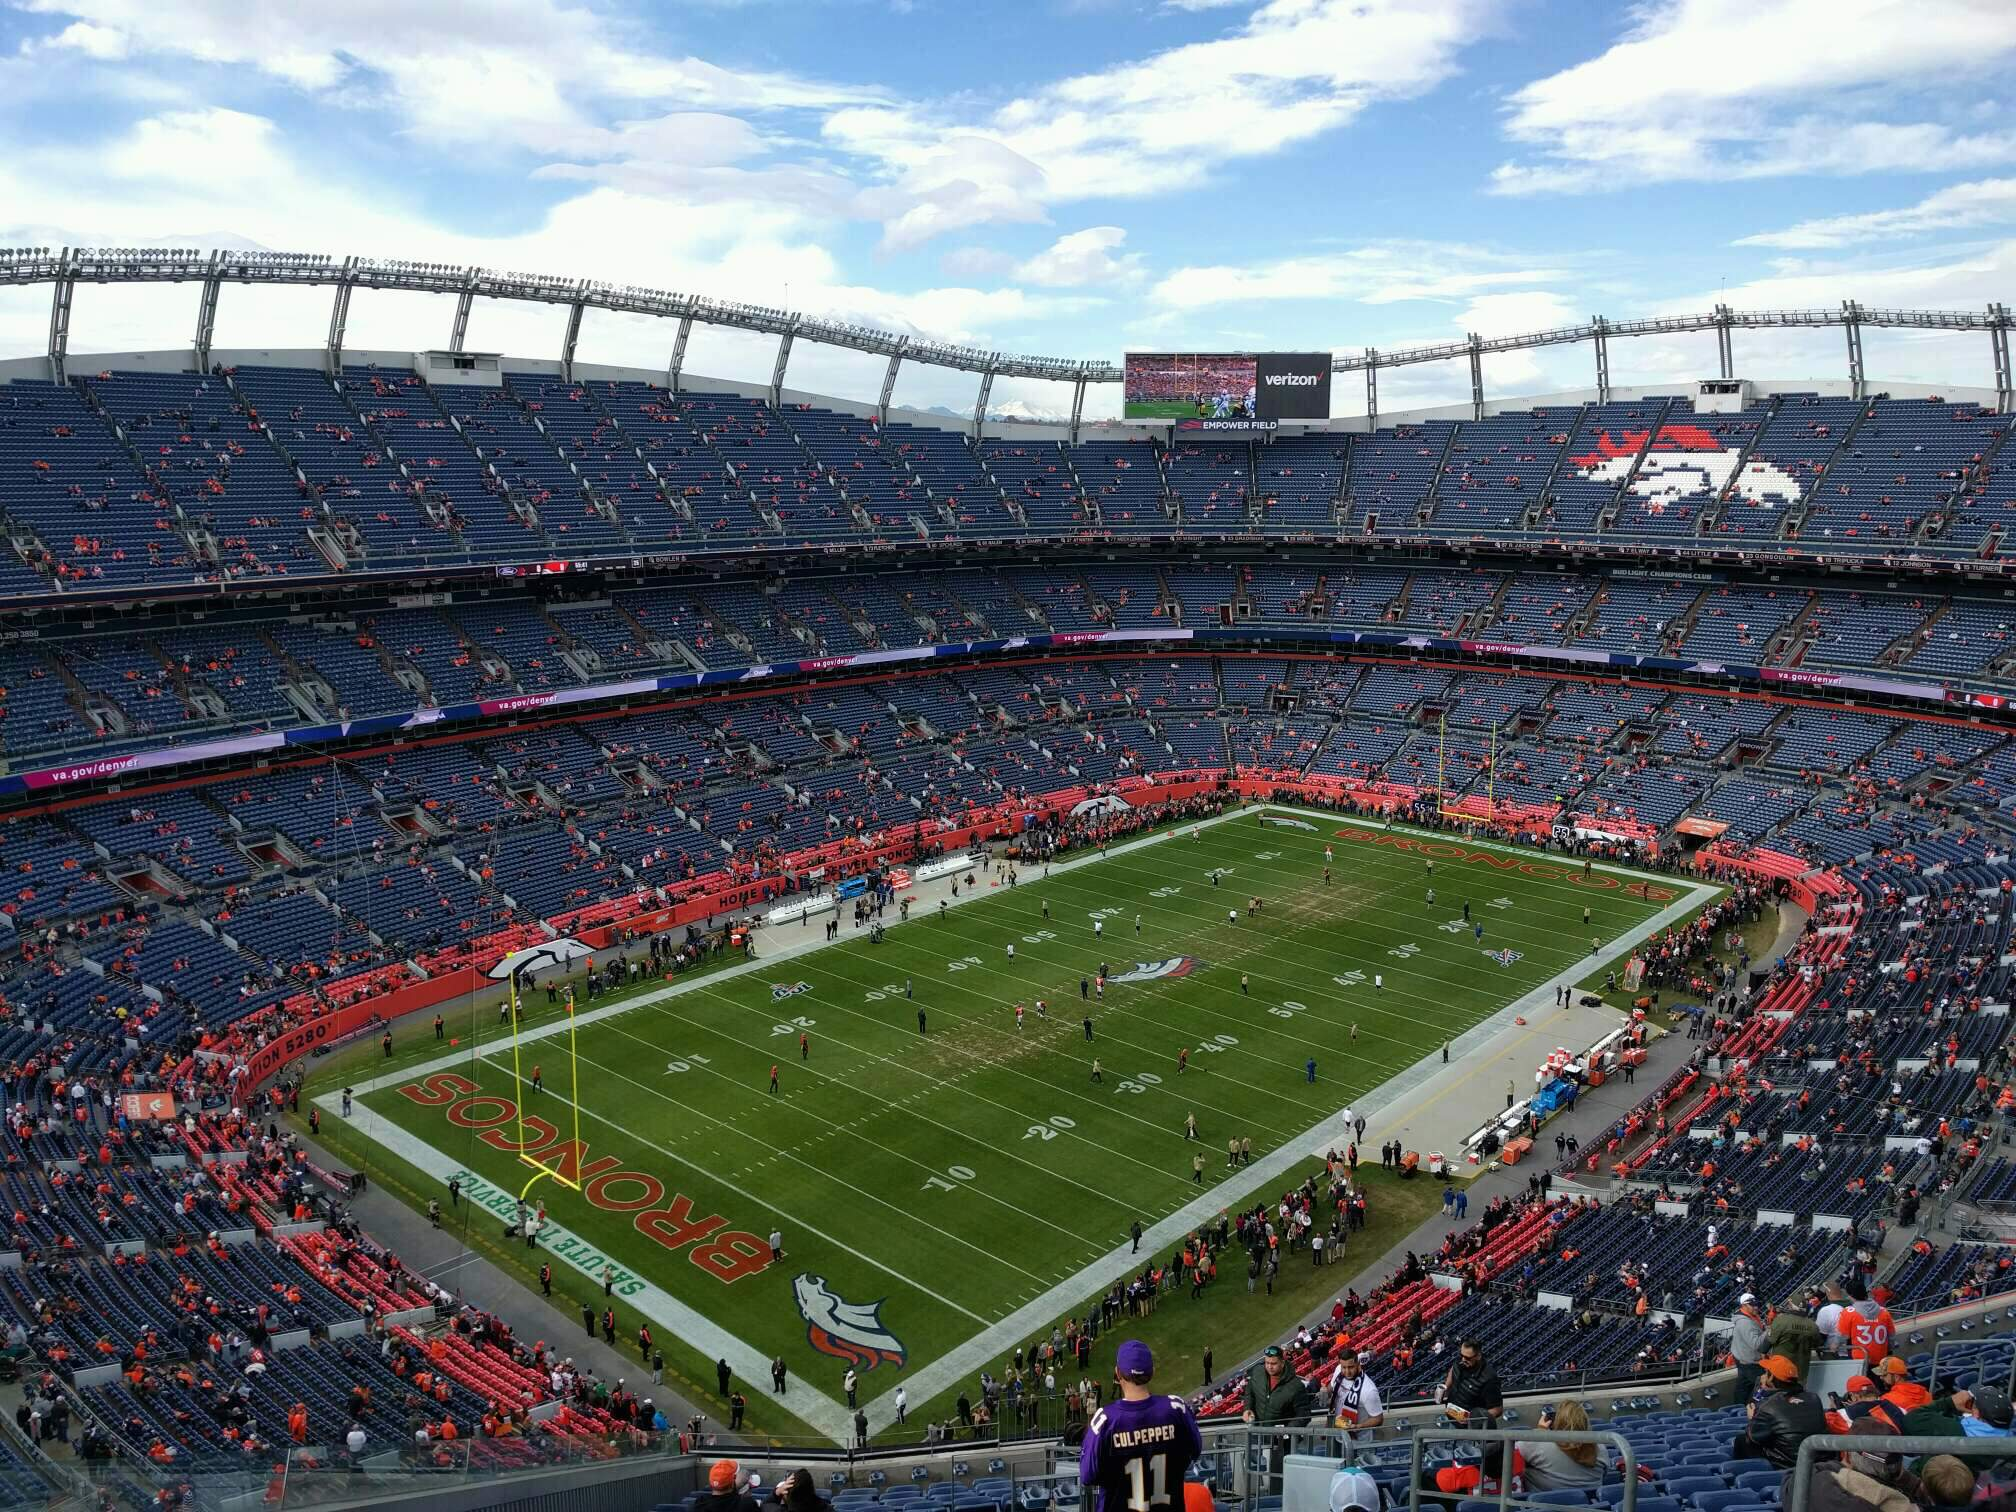 Empower Field at Mile High Stadium Section 542 Row 20 Seat 5